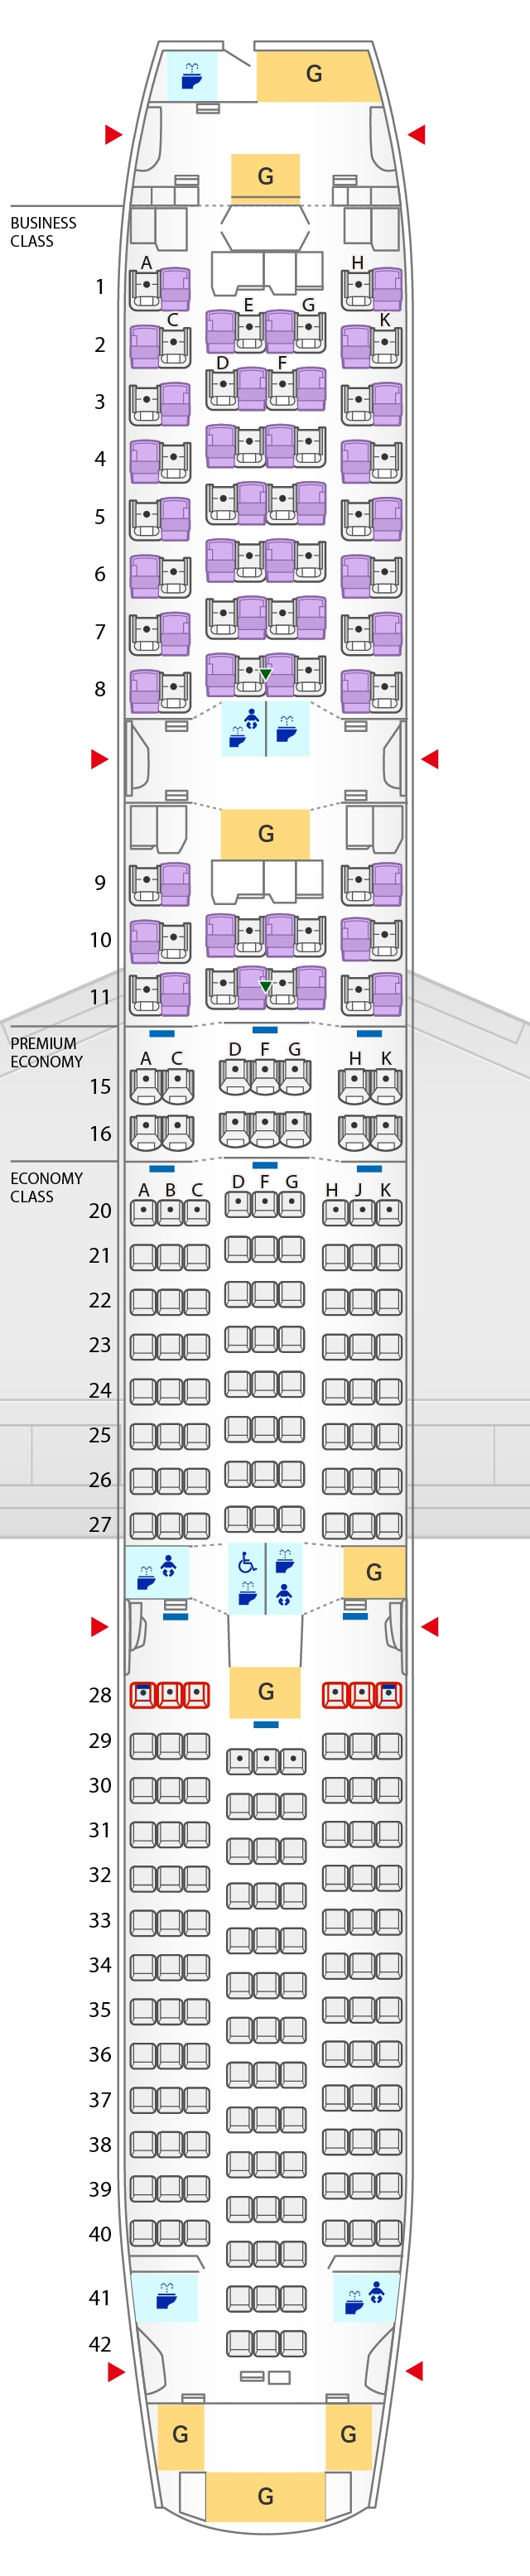 https://www.ana.co.jp/be/int/seatmap/image/seatmap_89E.png